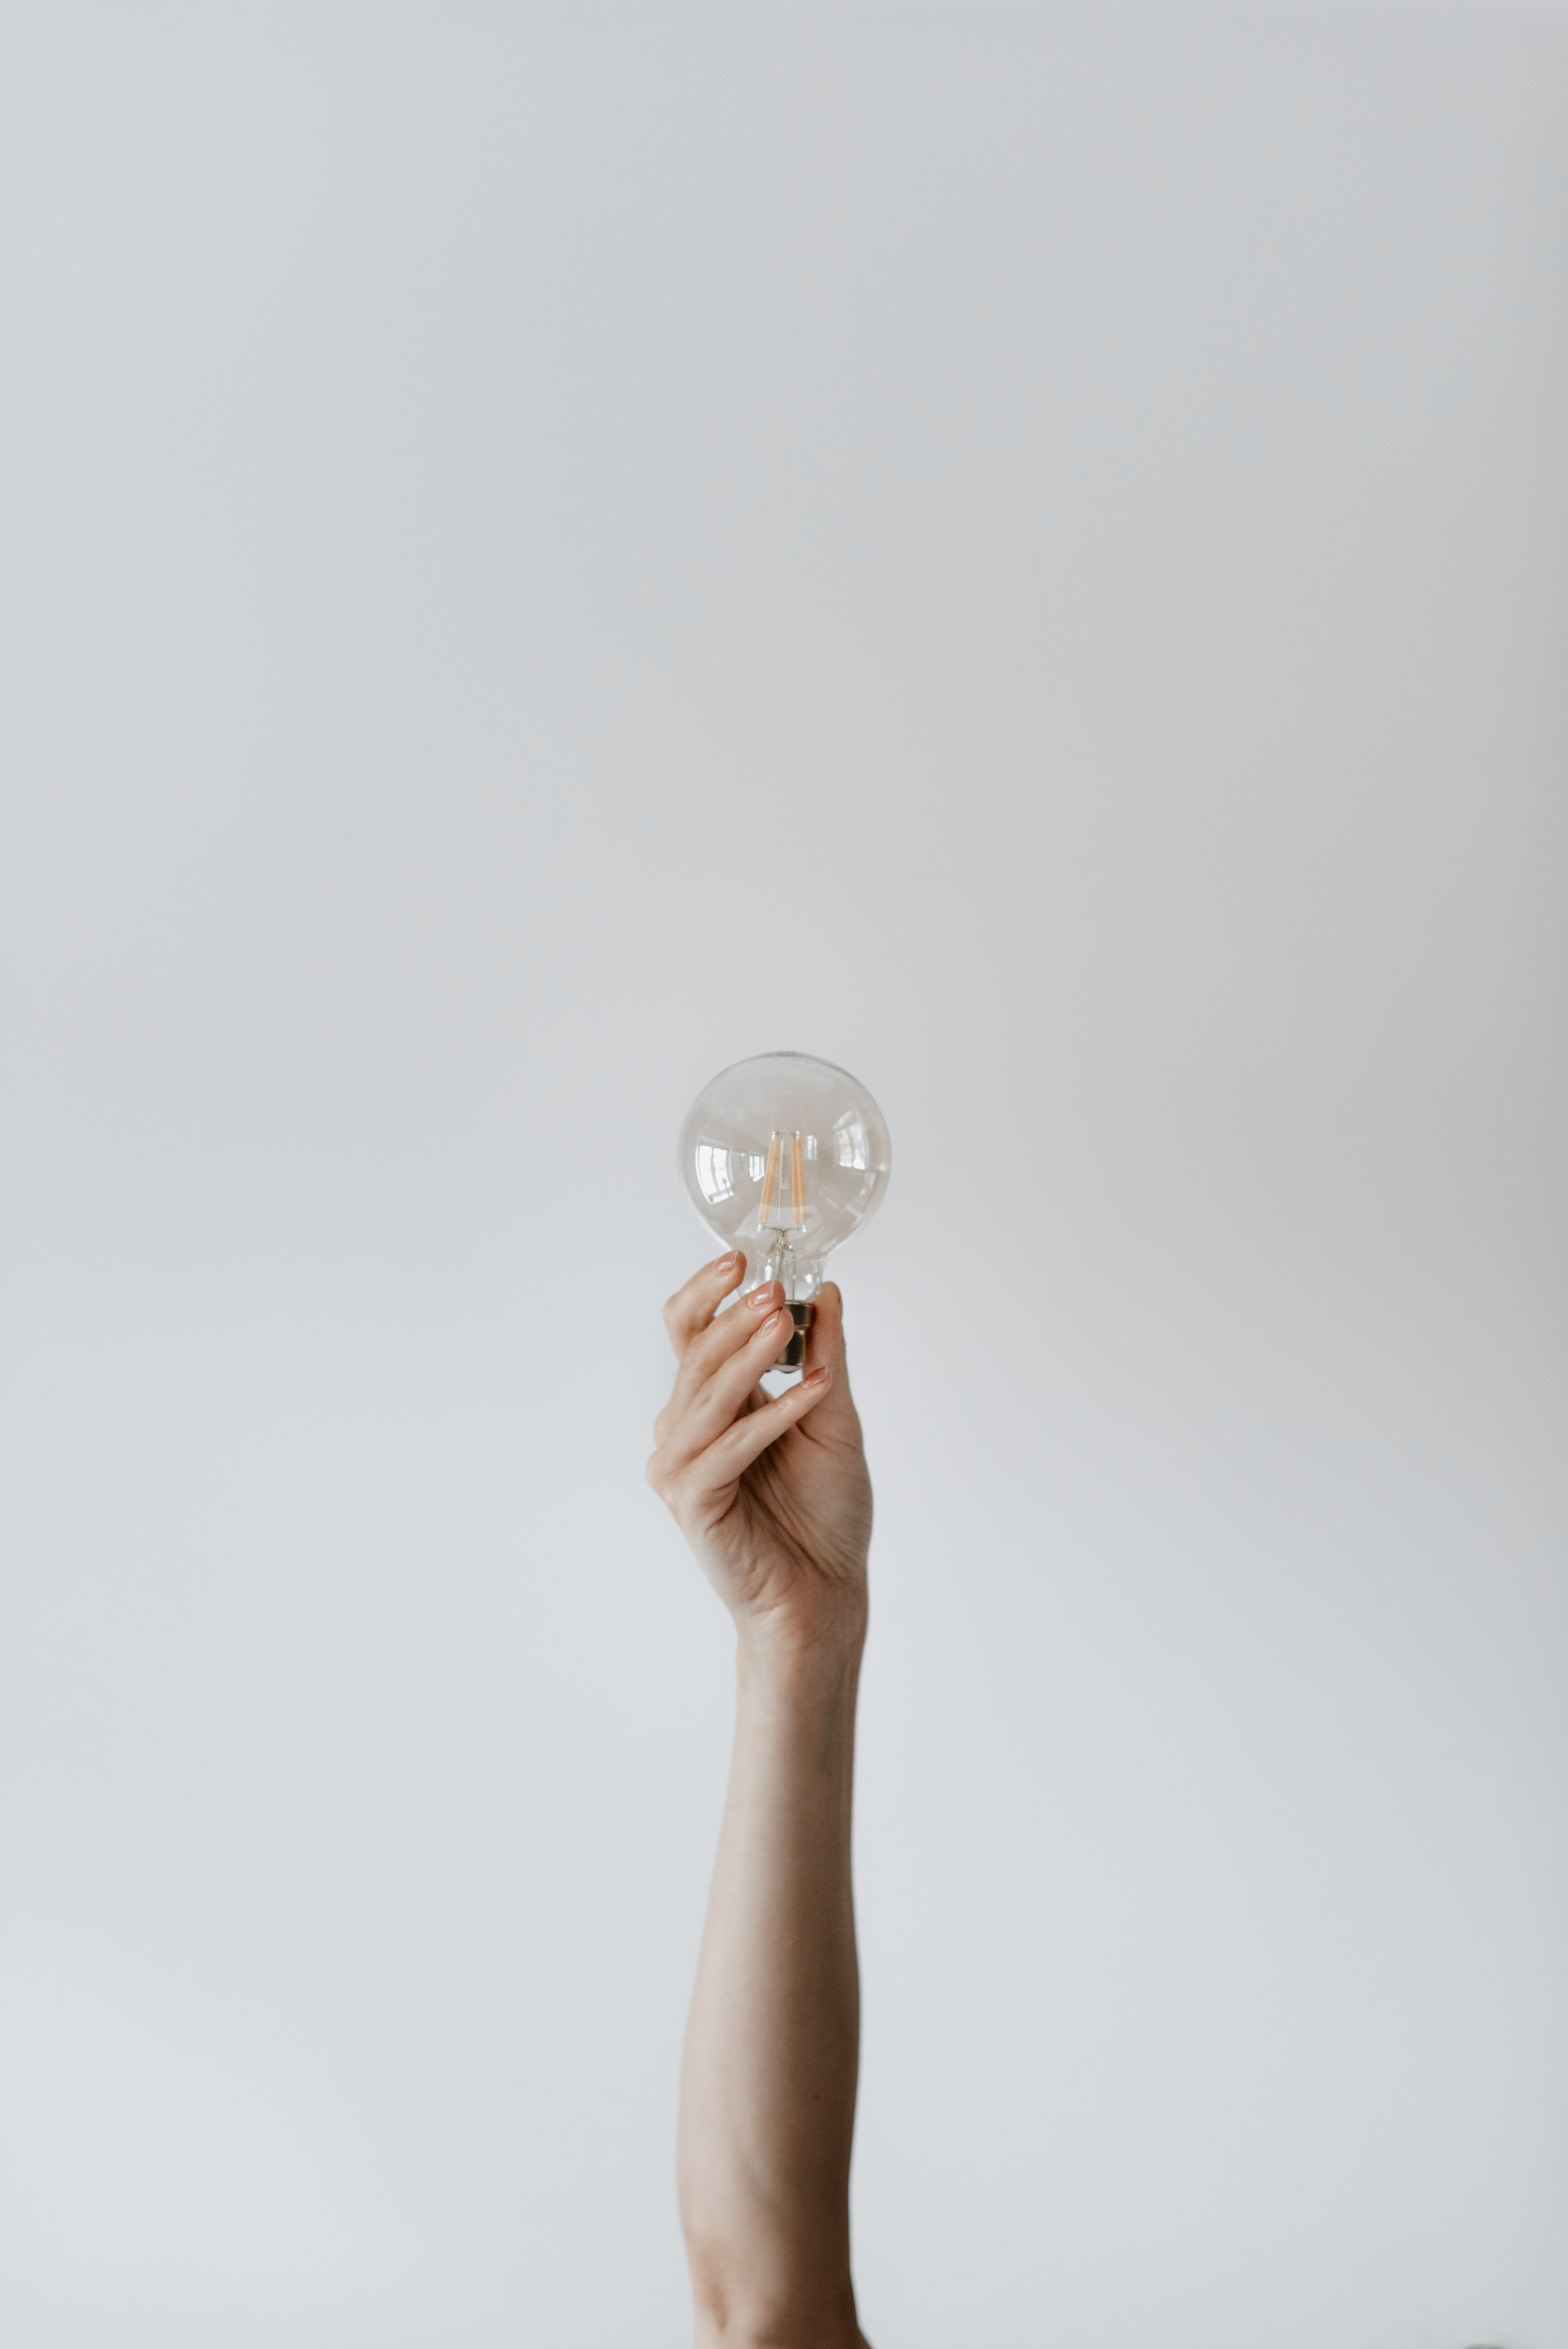 Image of a woman's arm holding up a lightbulb, on a white background